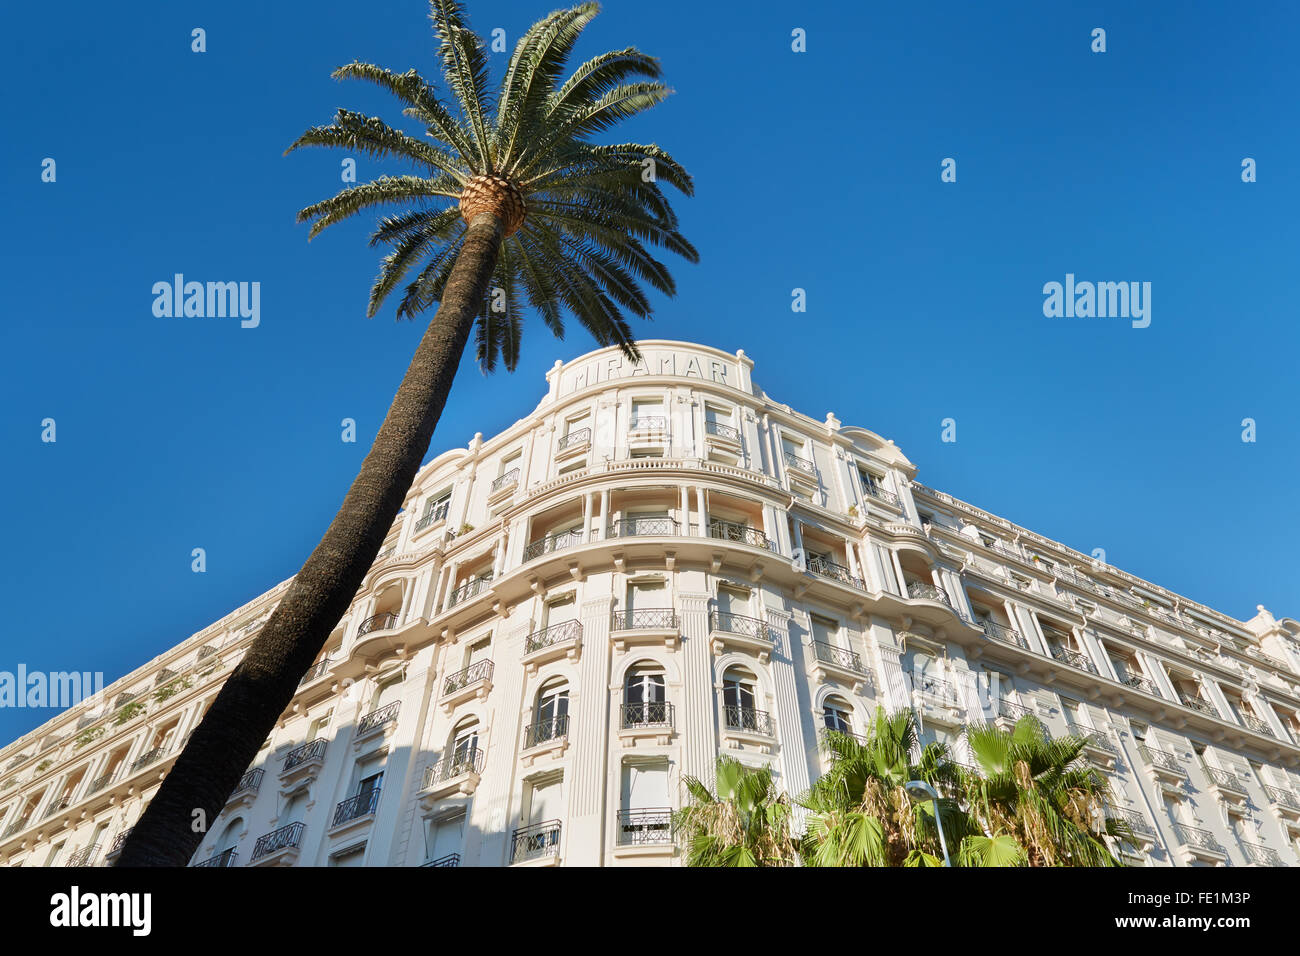 Luxury hotel 'Le Palais Miramar', located on famous Croisette boulevard in Cannes - Stock Image